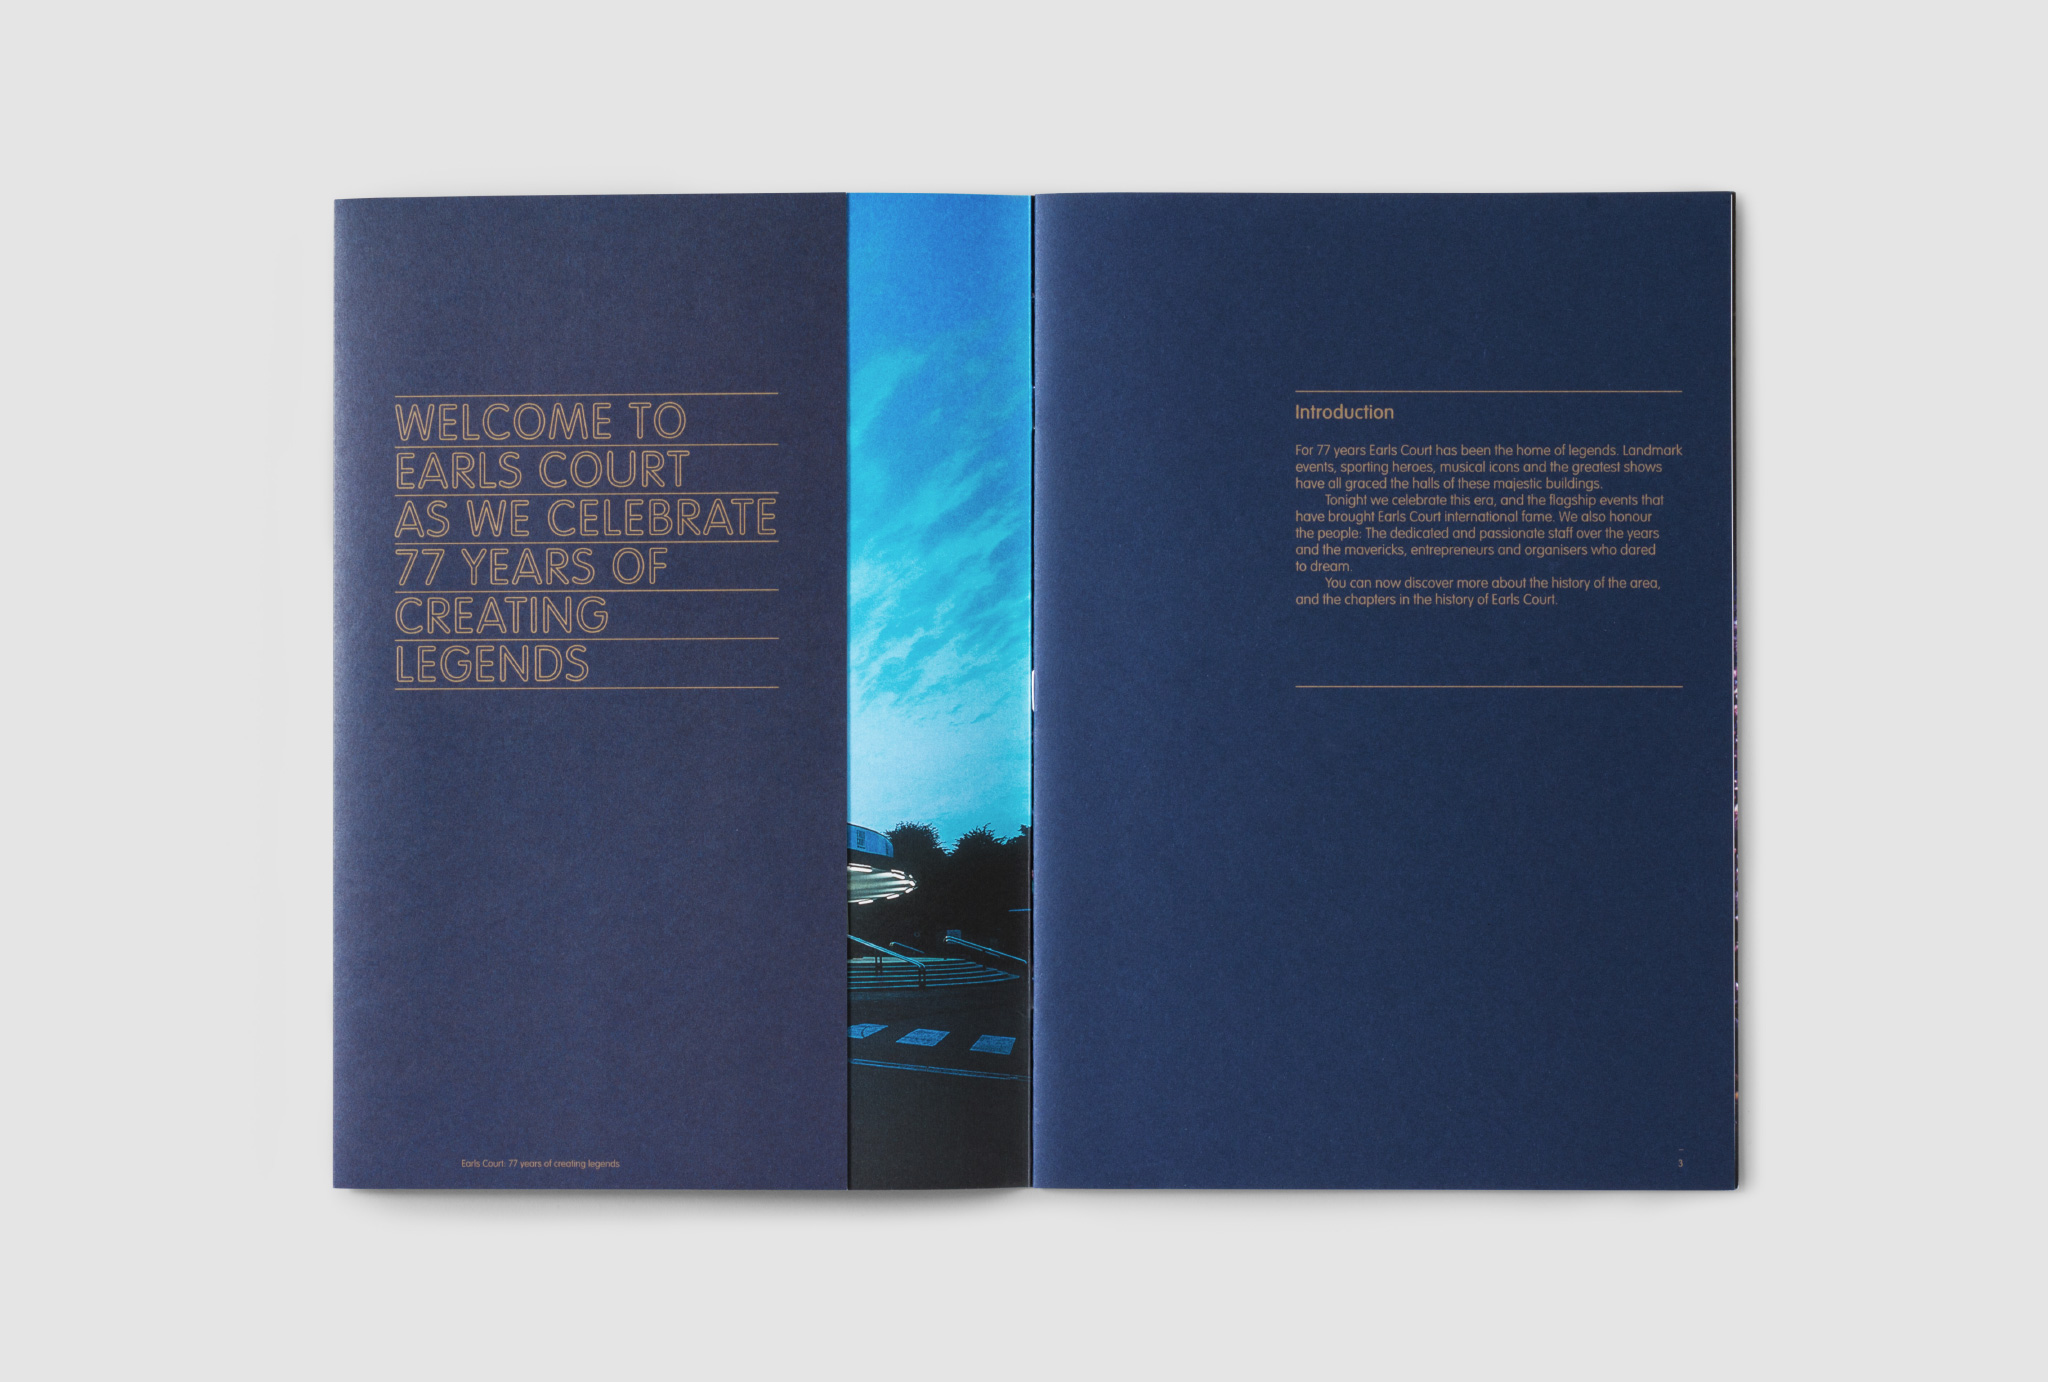 dark blue catalogue page design with orange texts and a photograph